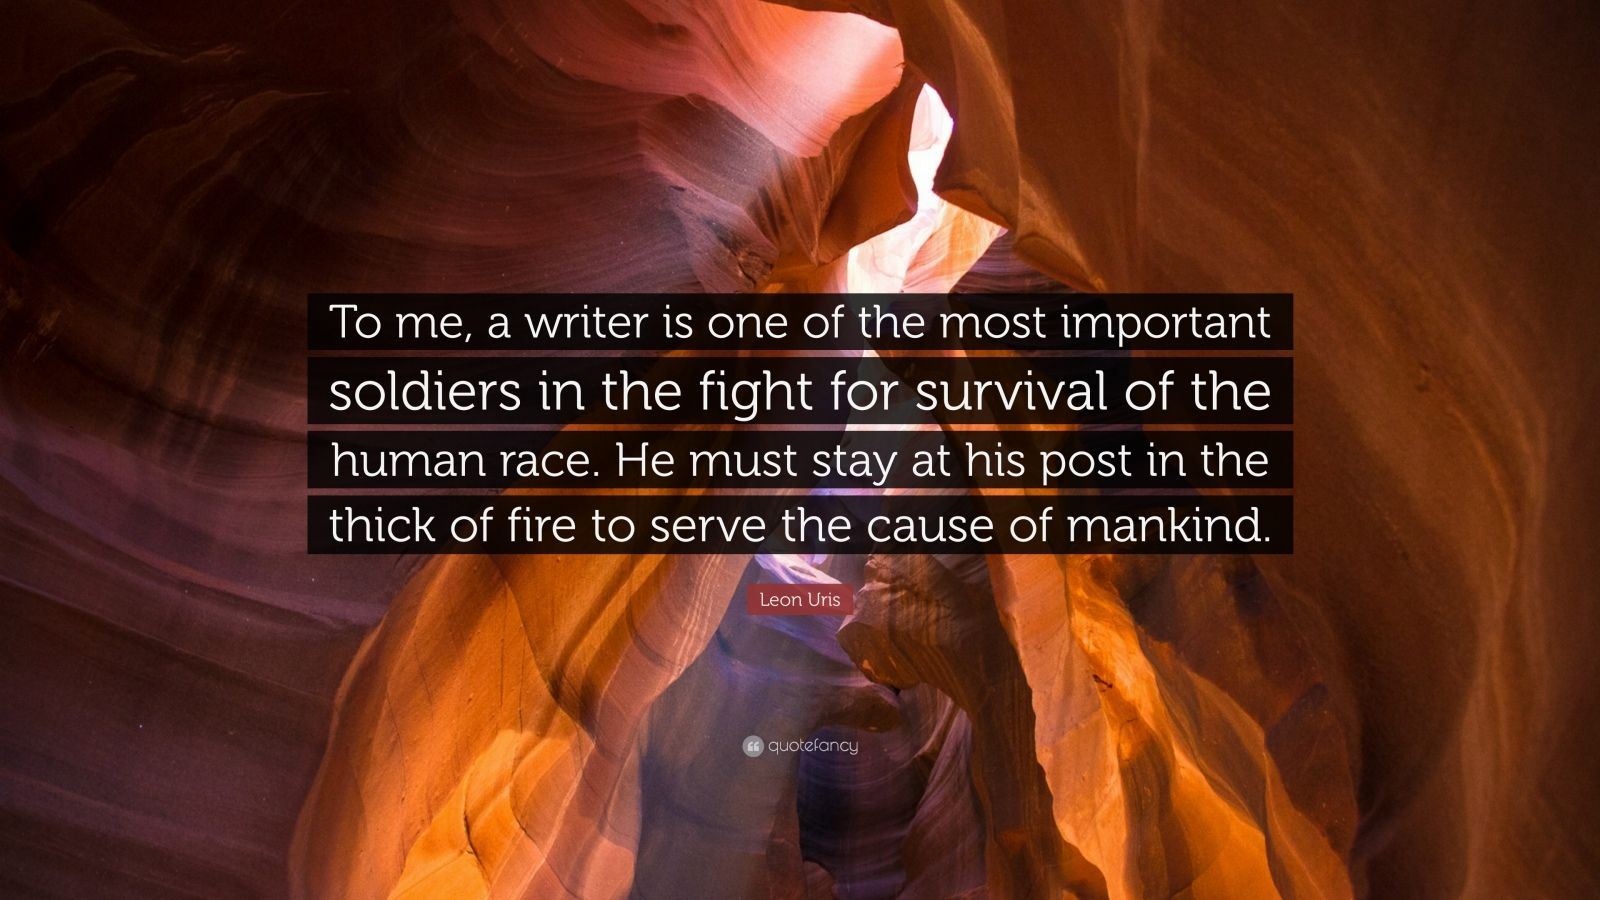 """Leon Uris Quote: """"To me, a writer is one of the most important soldiers in the fight for survival of the human race. He must stay at his post in the thick of fire to serve the cause of mankind."""""""